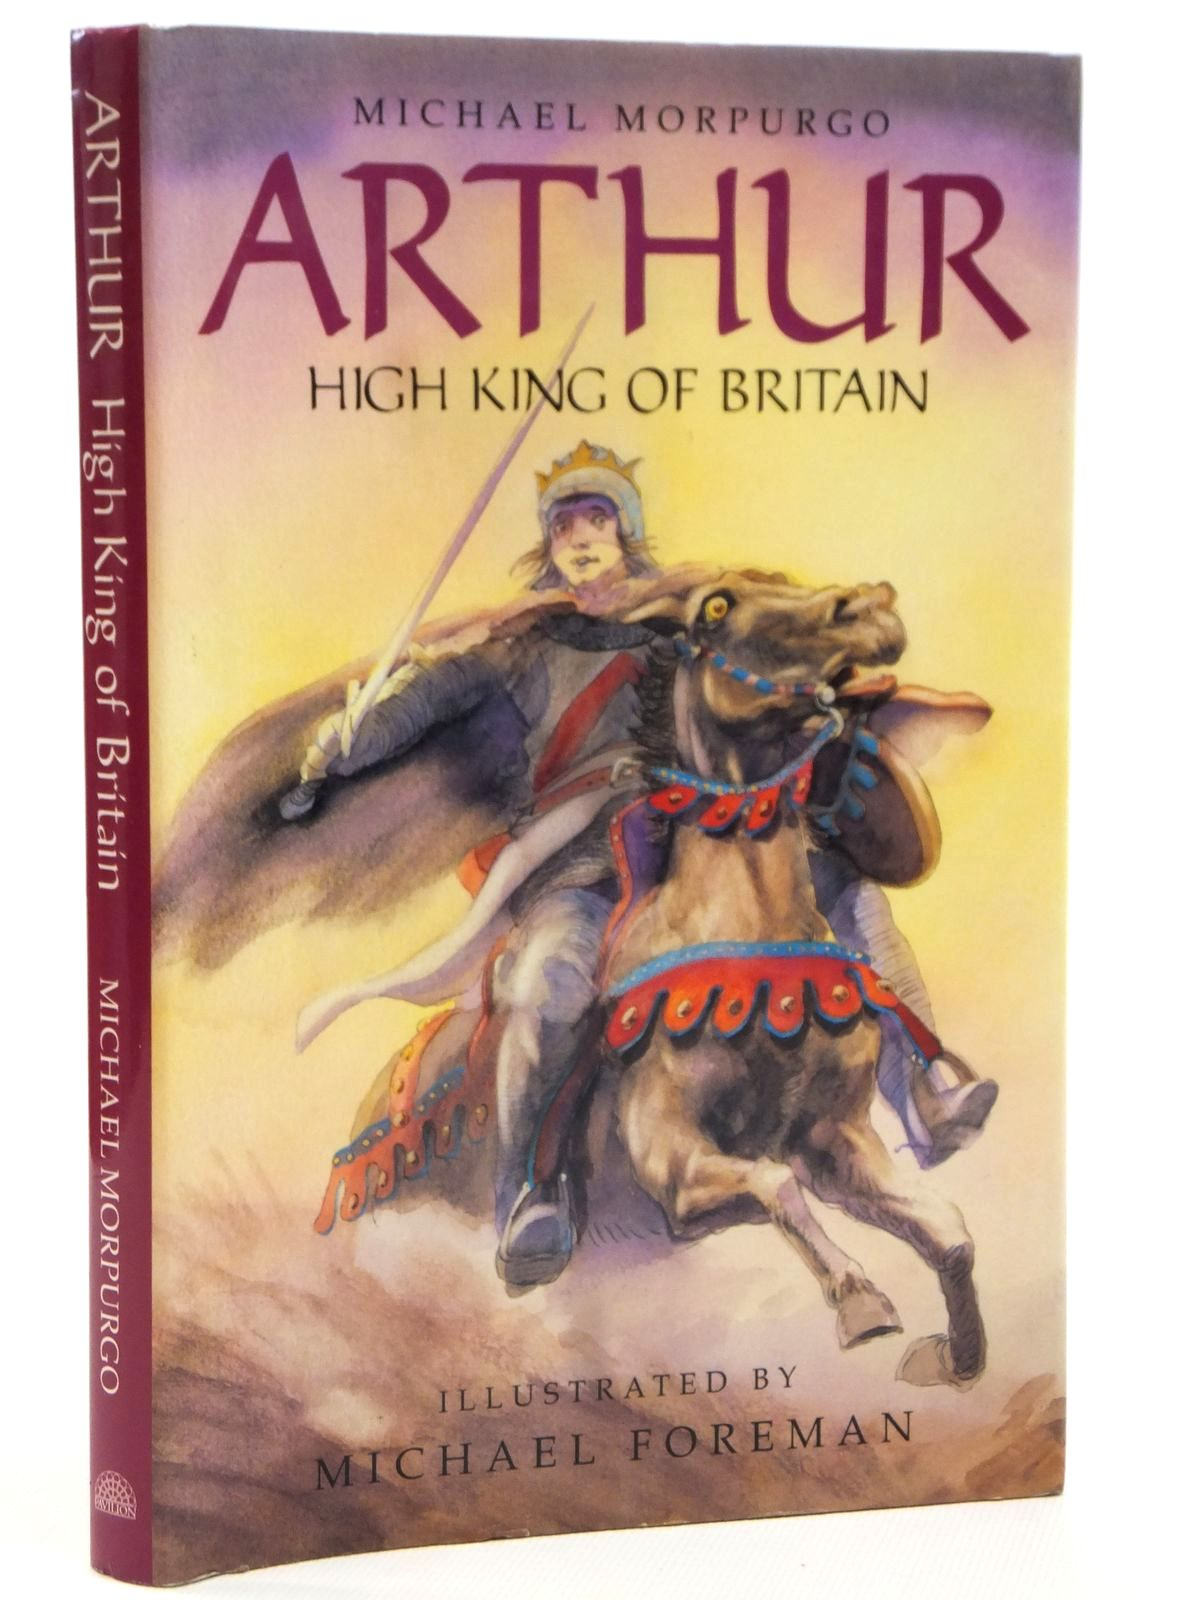 Photo of ARTHUR HIGH KING OF BRITAIN written by Morpurgo, Michael illustrated by Foreman, Michael published by Pavilion Books Ltd. (STOCK CODE: 2121575)  for sale by Stella & Rose's Books